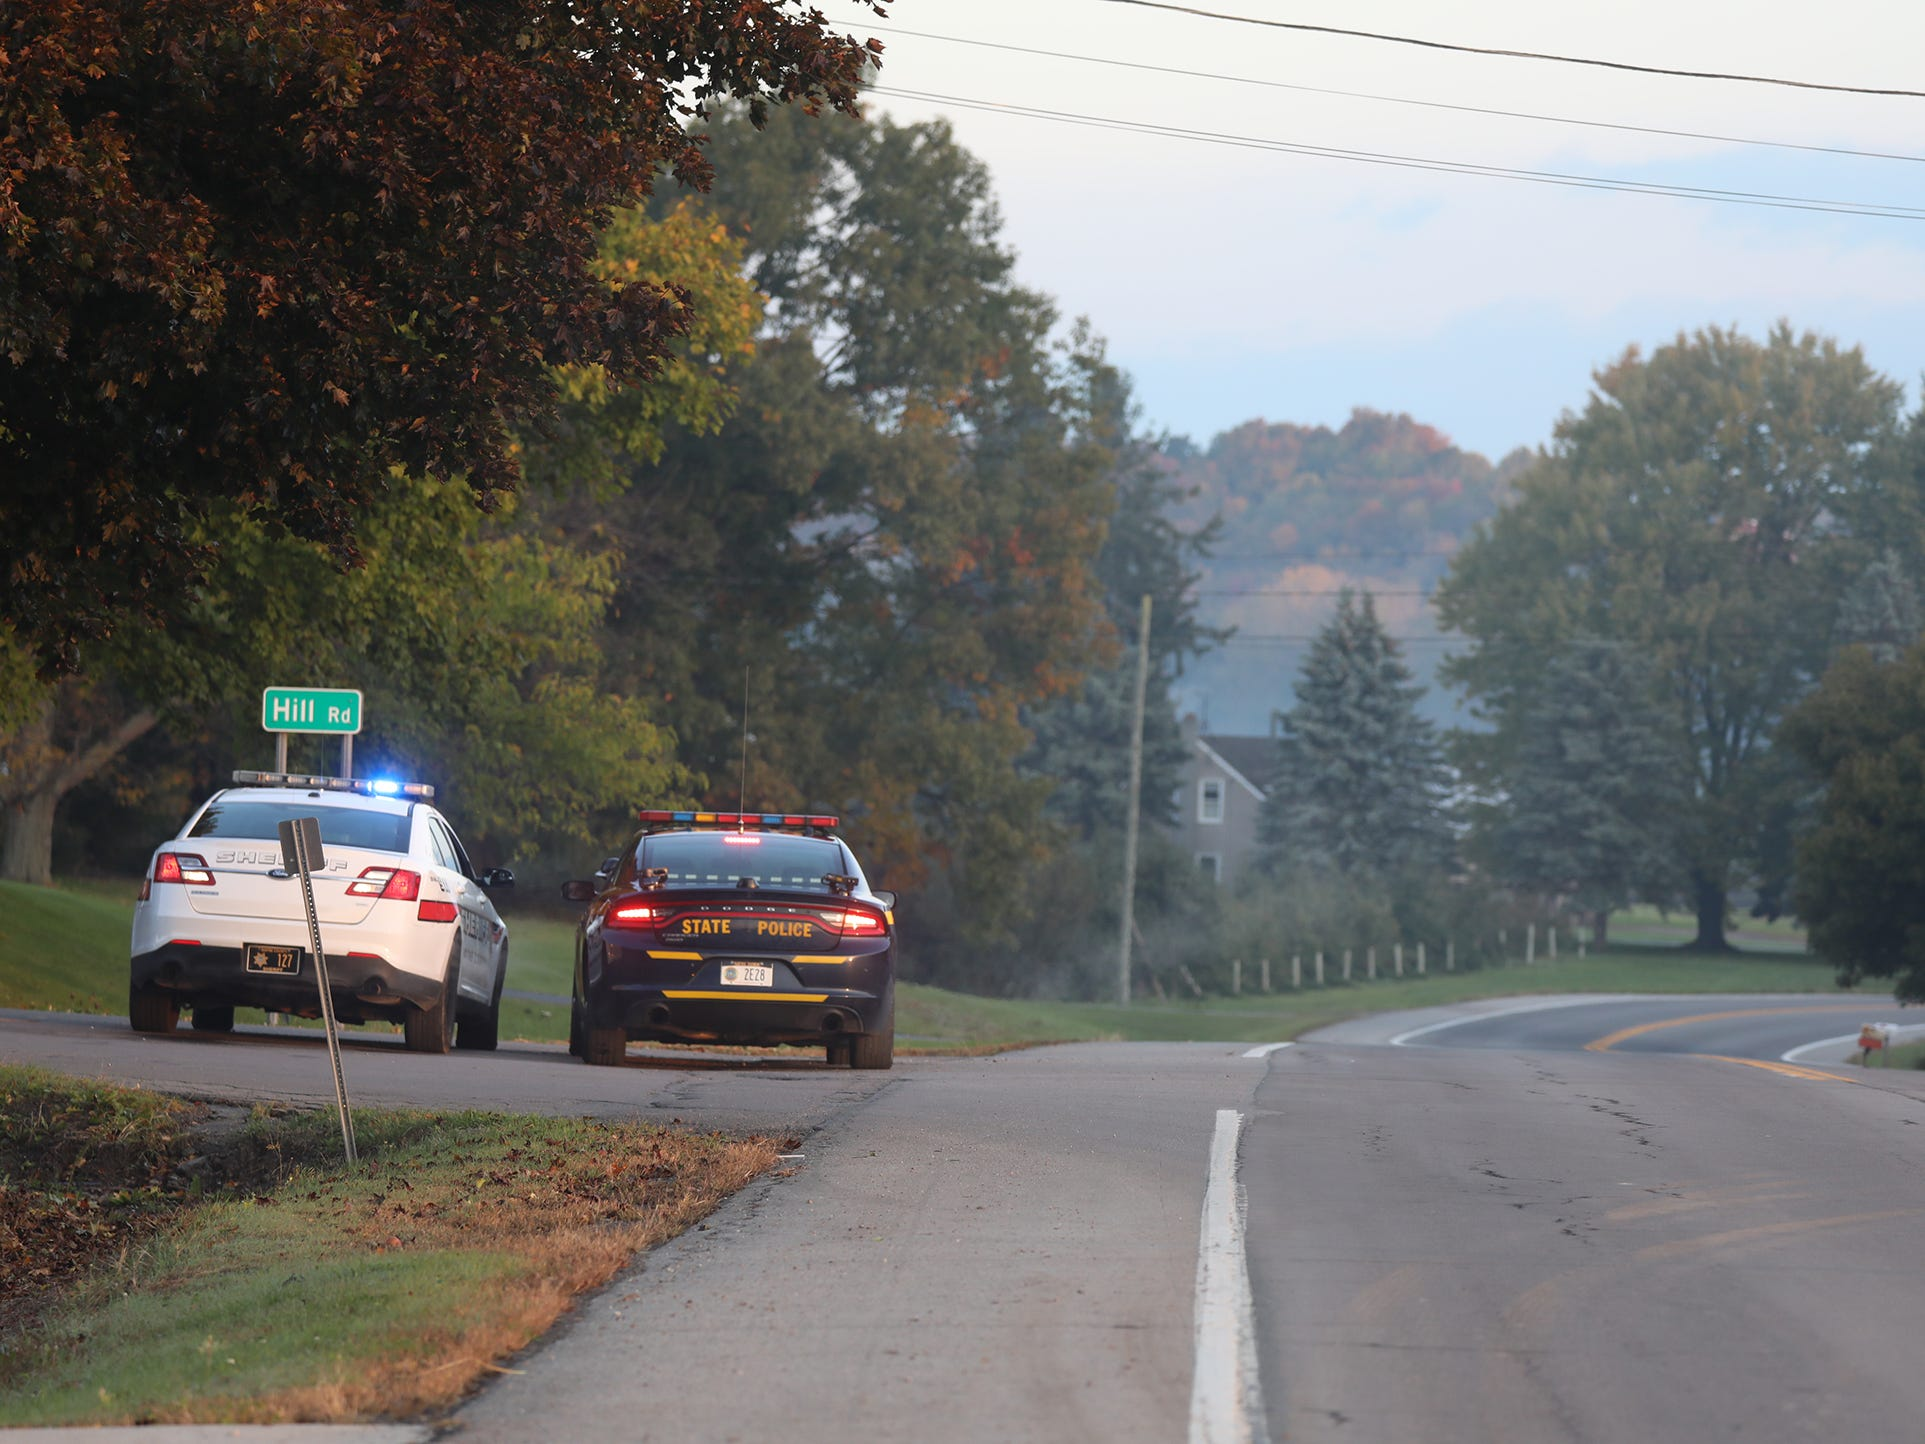 Police agencies block off different streets in Sodus.  Hill Road was one of the roads blocked.